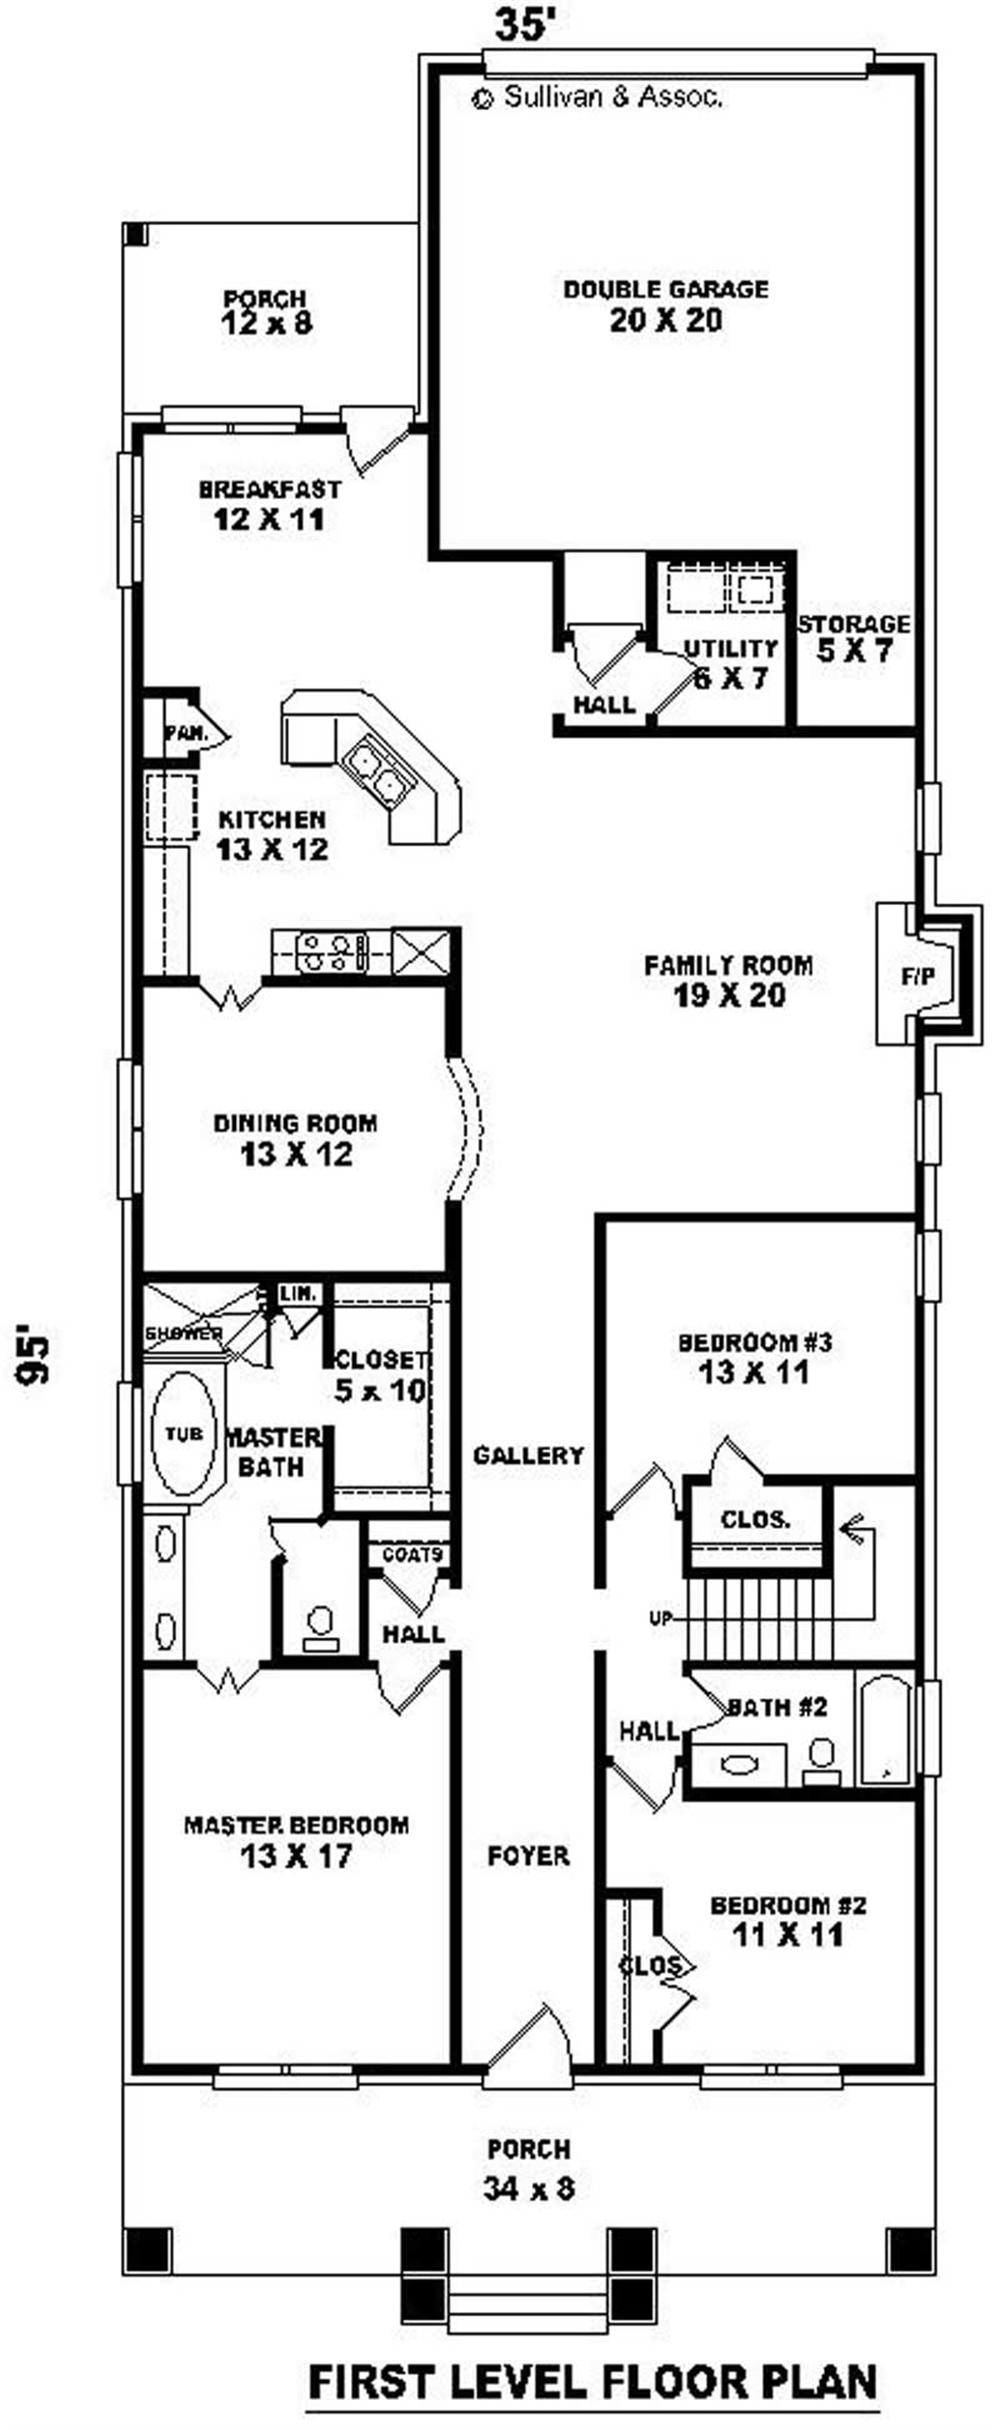 Large Images For House Plan 170 3185